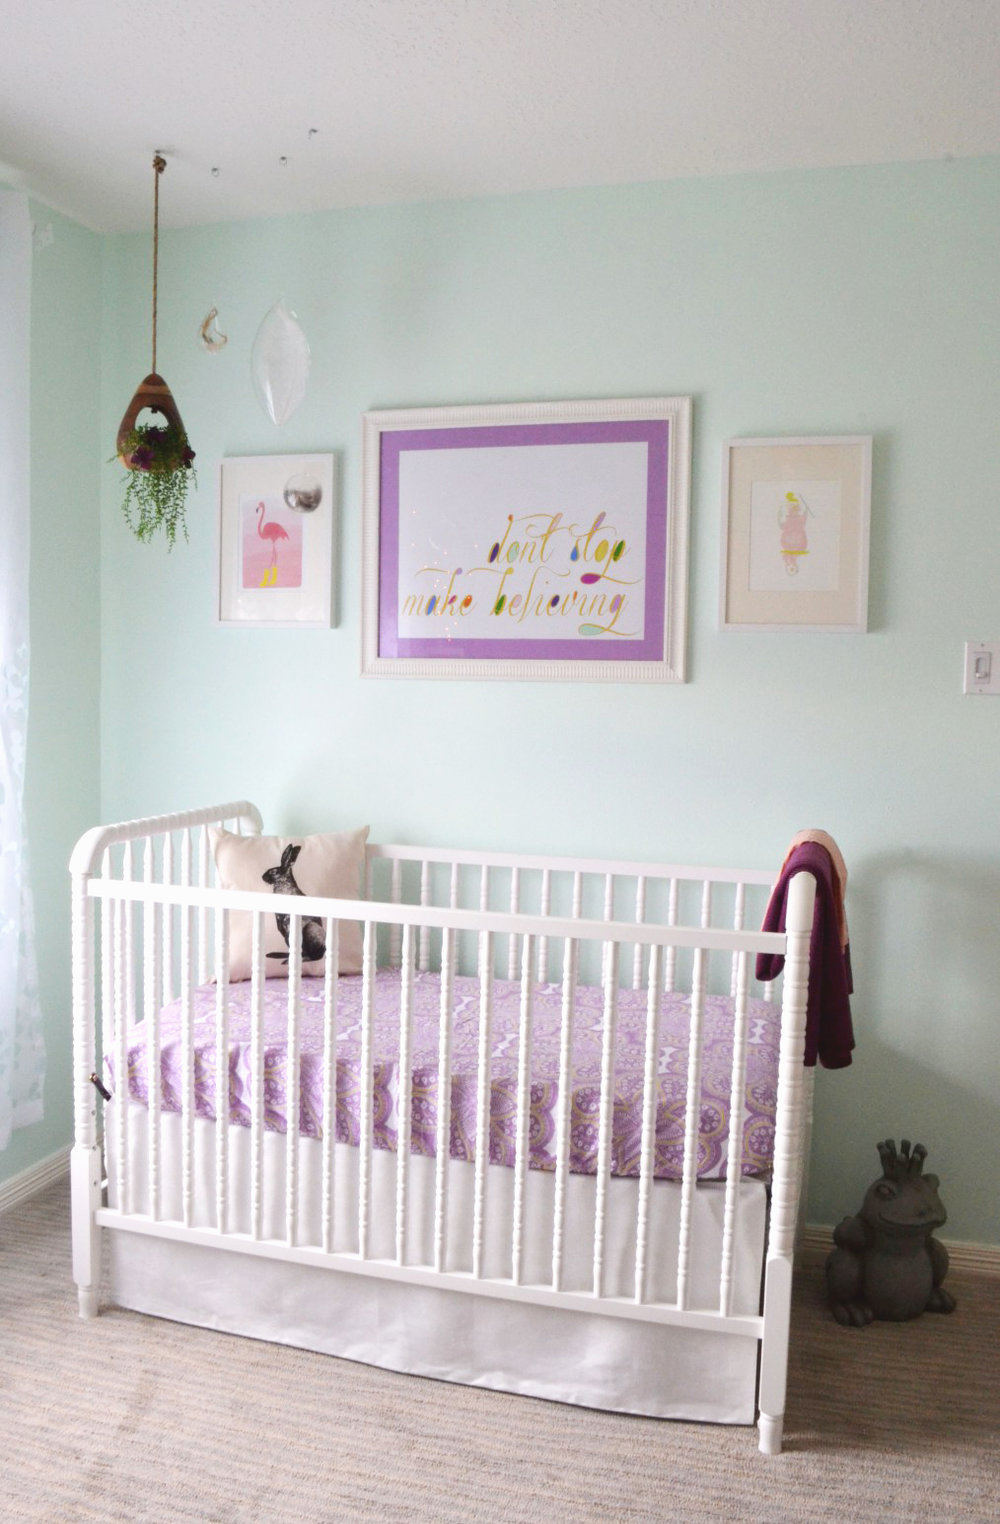 Make Believe Nursery 1.jpg